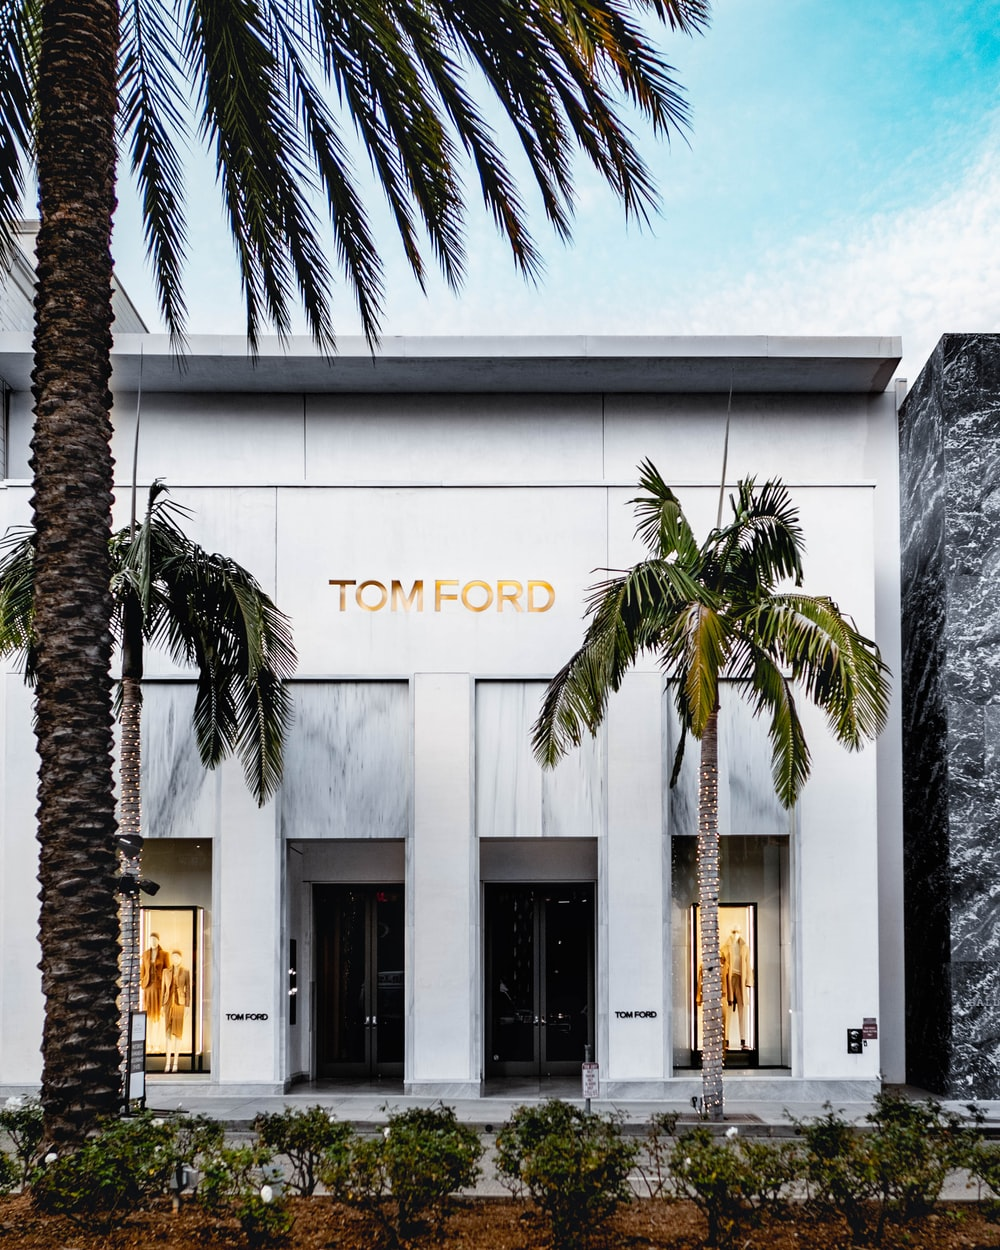 Tom Ford building at daytime